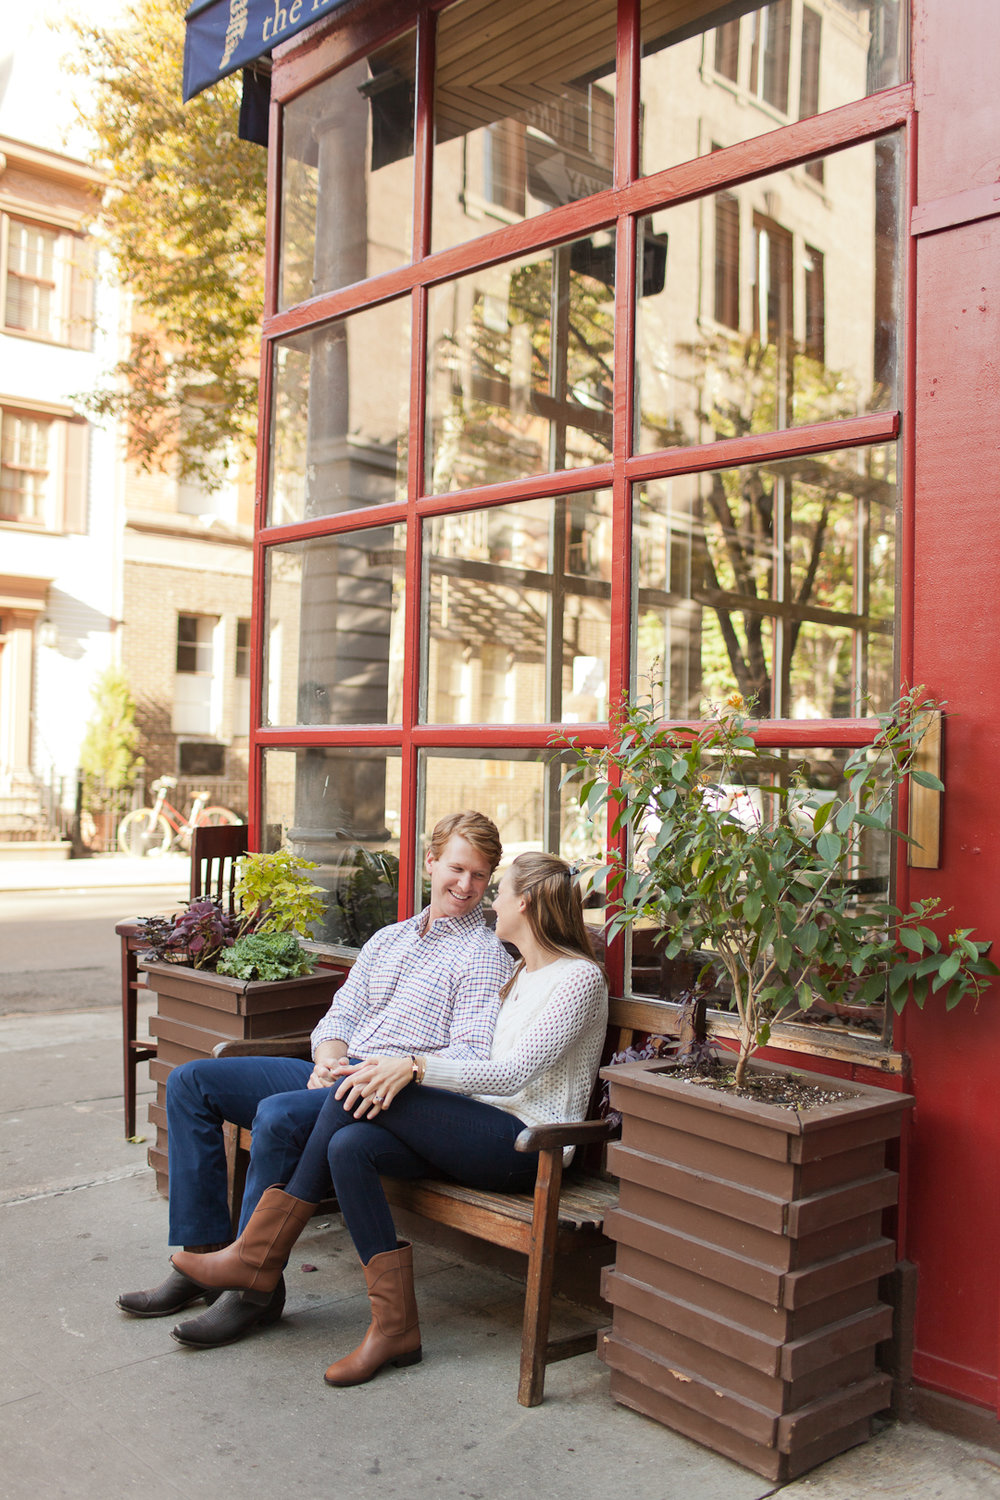 Melissa Kruse Photography - Megan & Tyler West Village Engagement Photos-38.jpg